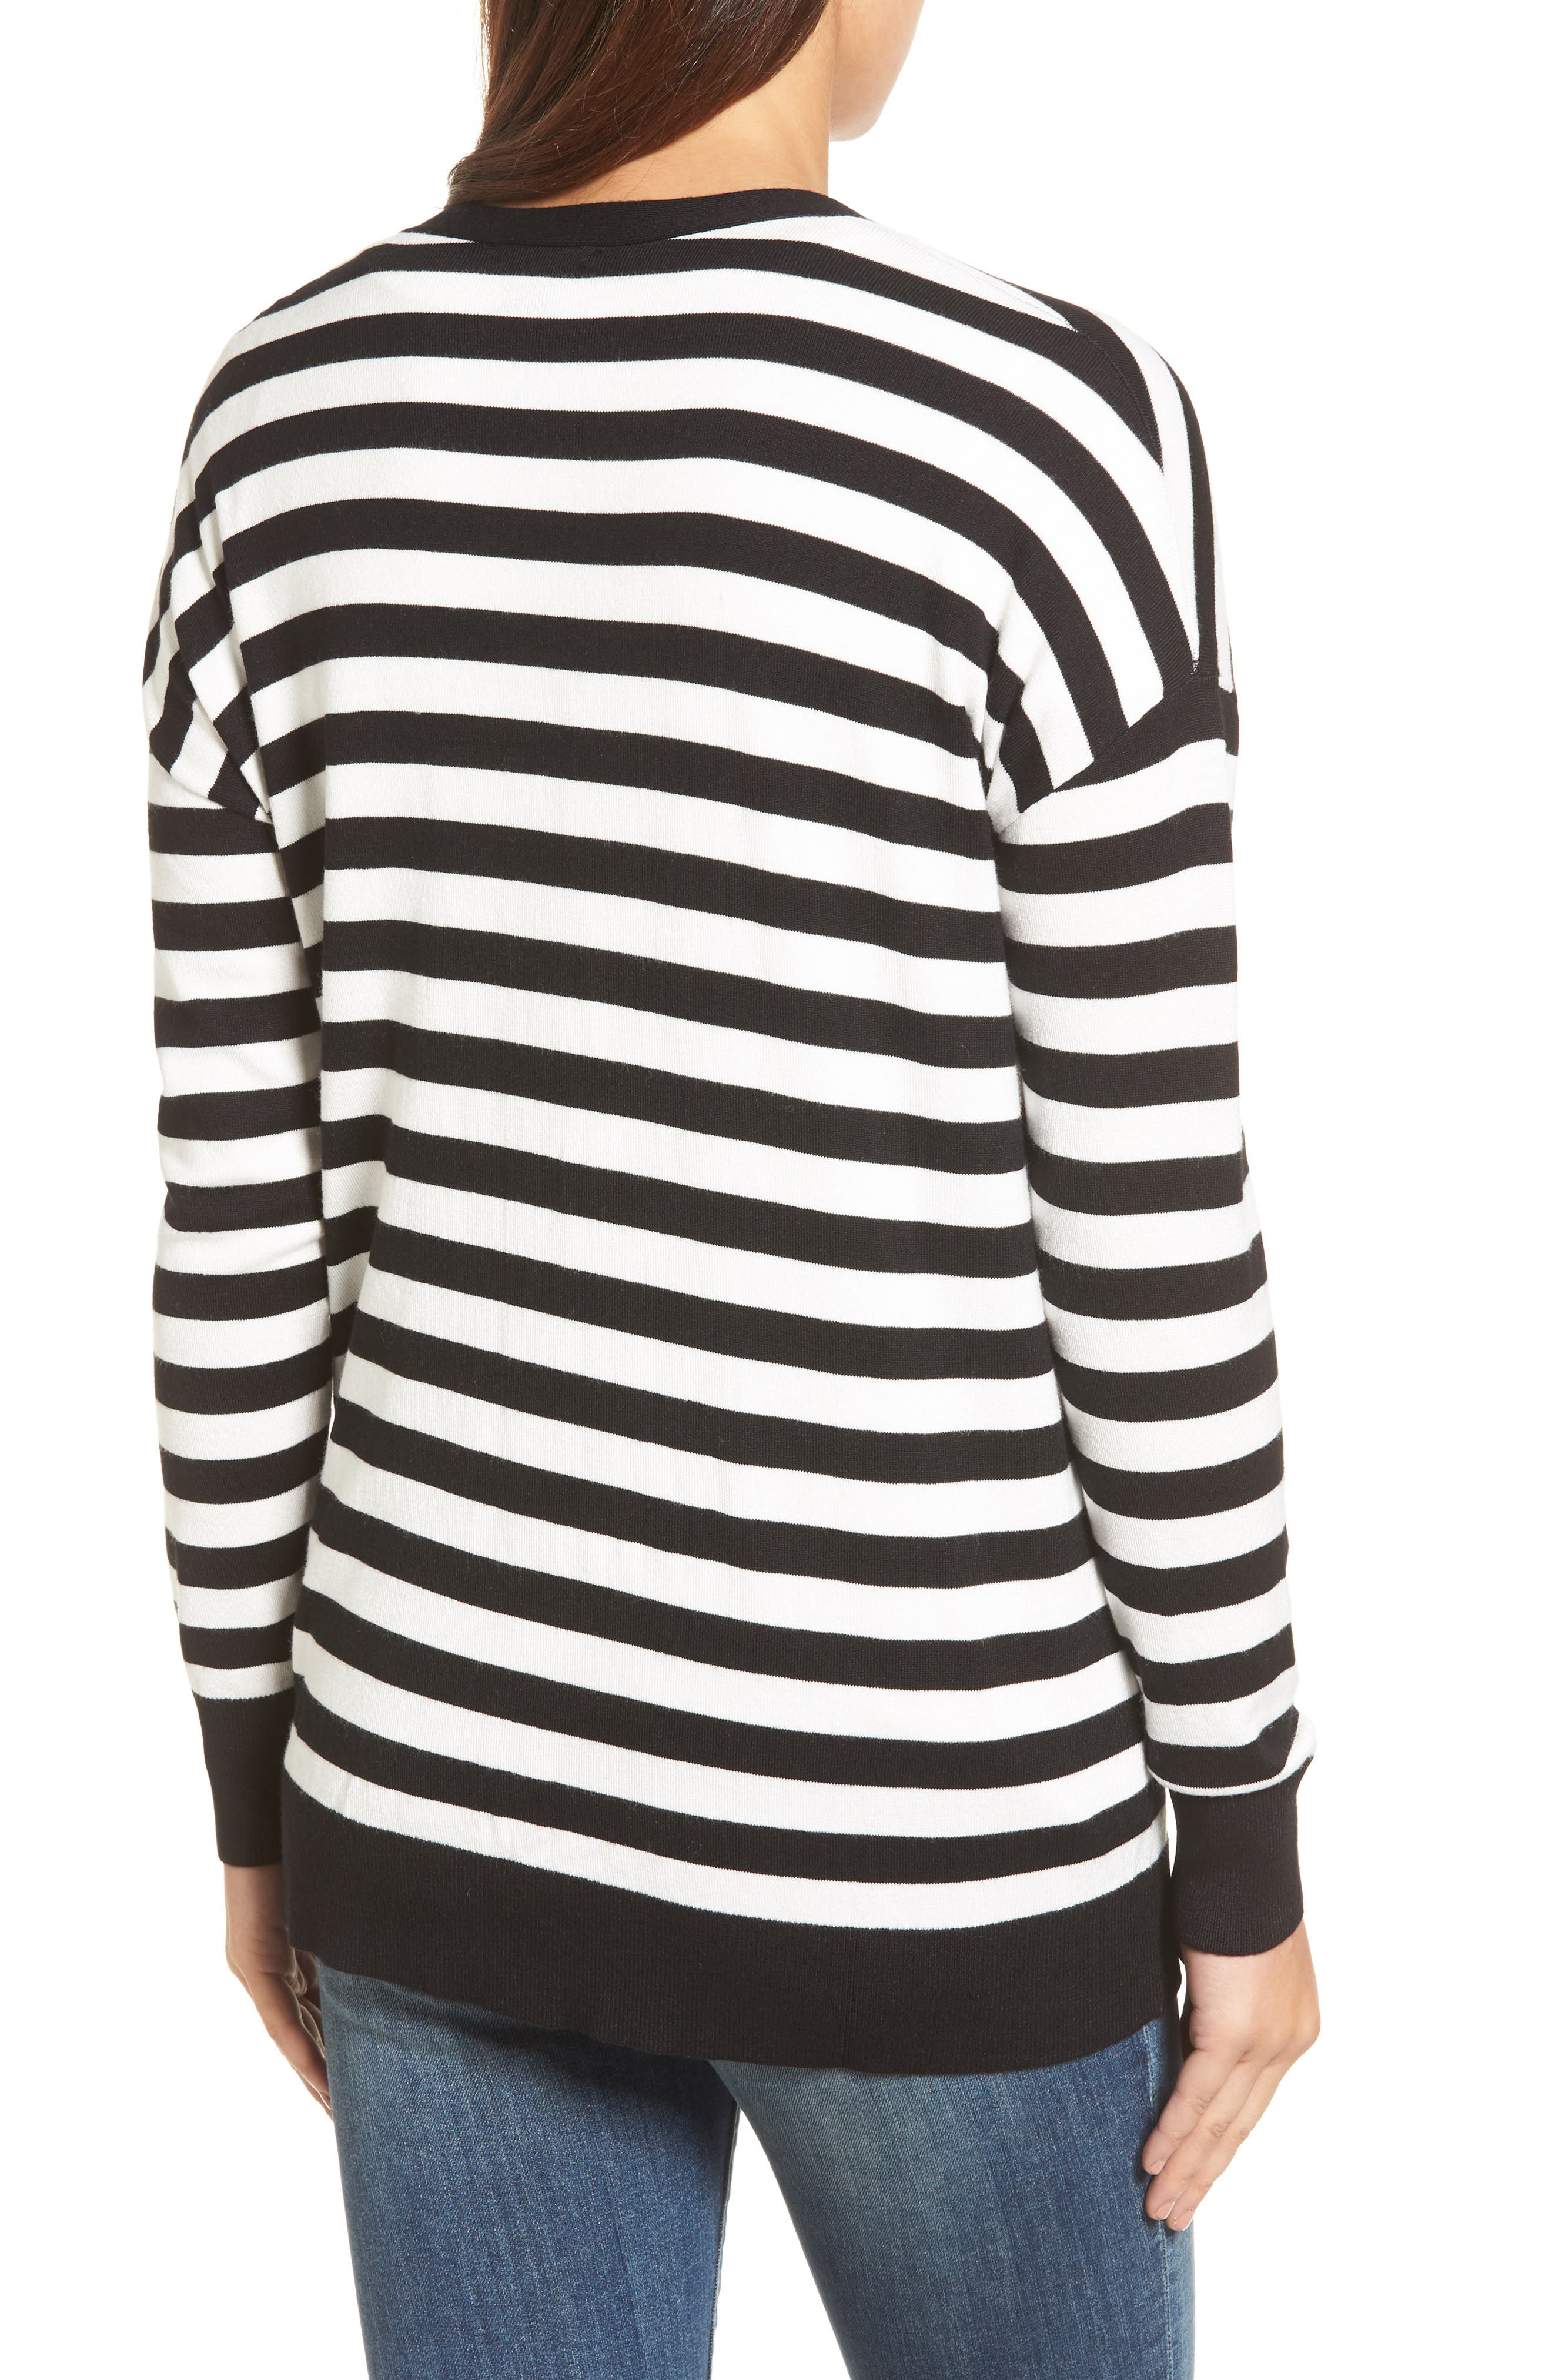 Relaxed Pocket Cardigan,                             Alternate thumbnail 3, color,                             Black- Ivory Stripe